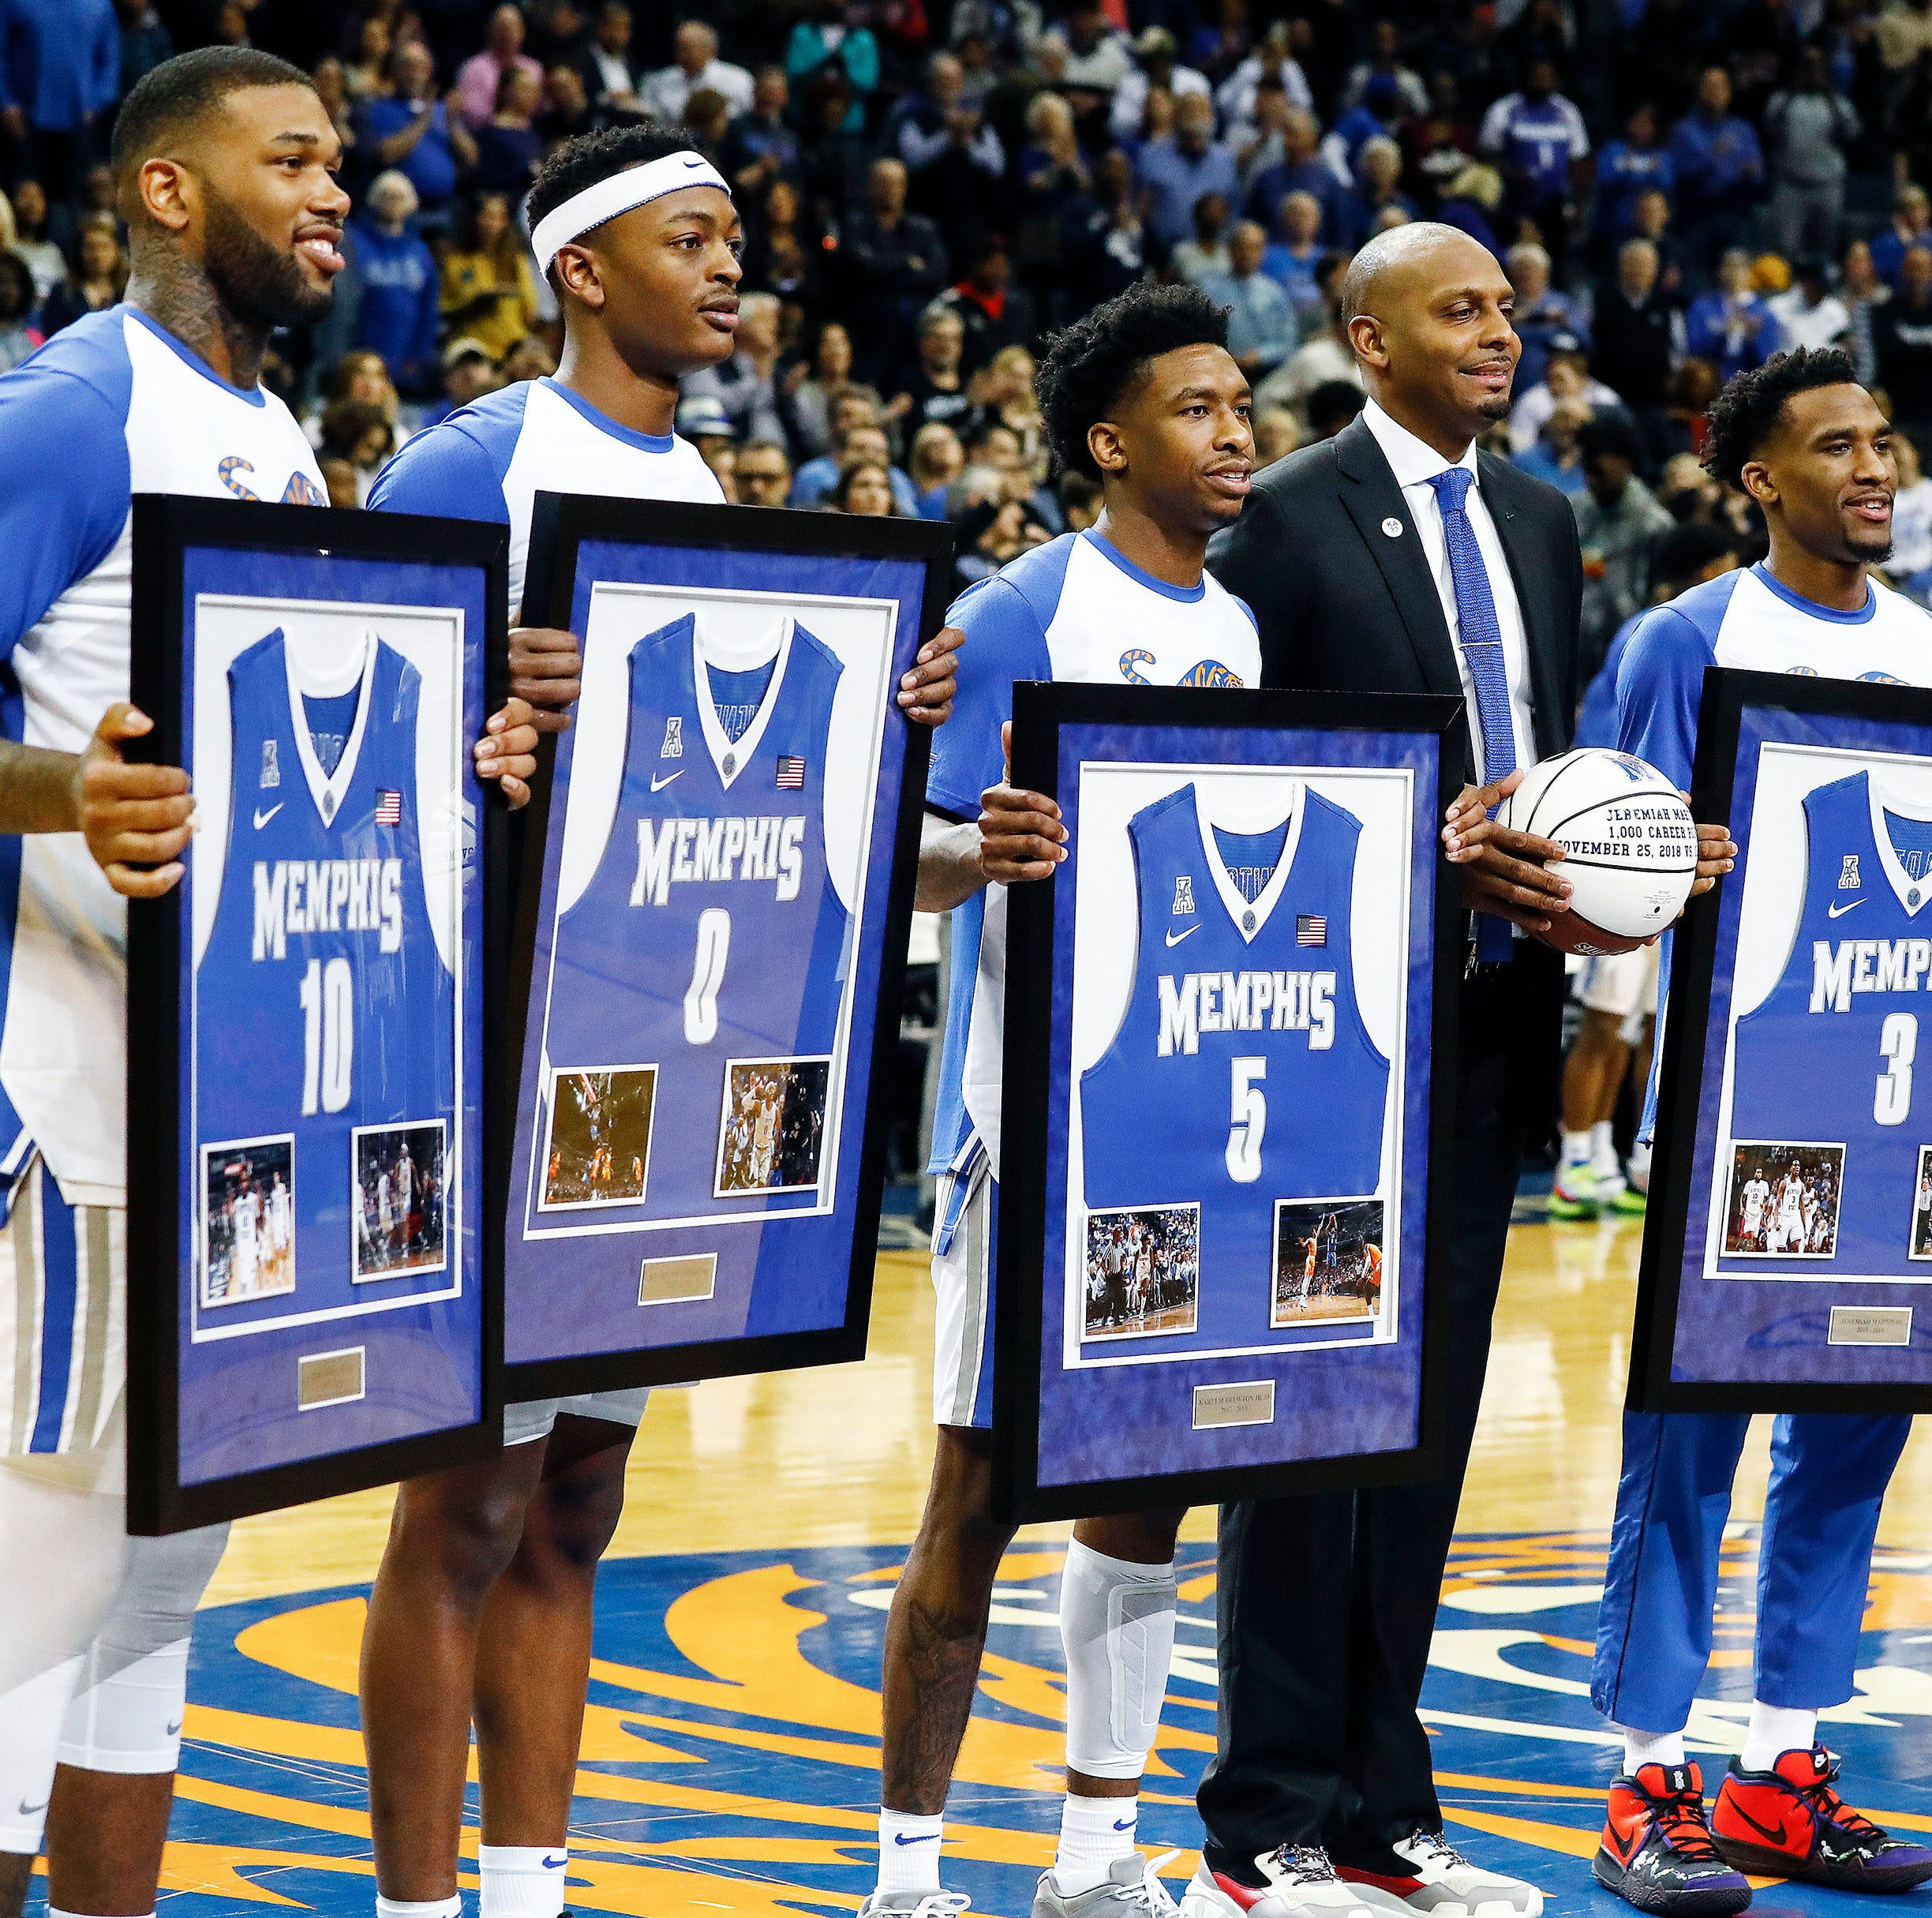 Memphis 66, Tulsa 63: Jeremiah Martin, Tigers edge Tulsa for senior night win